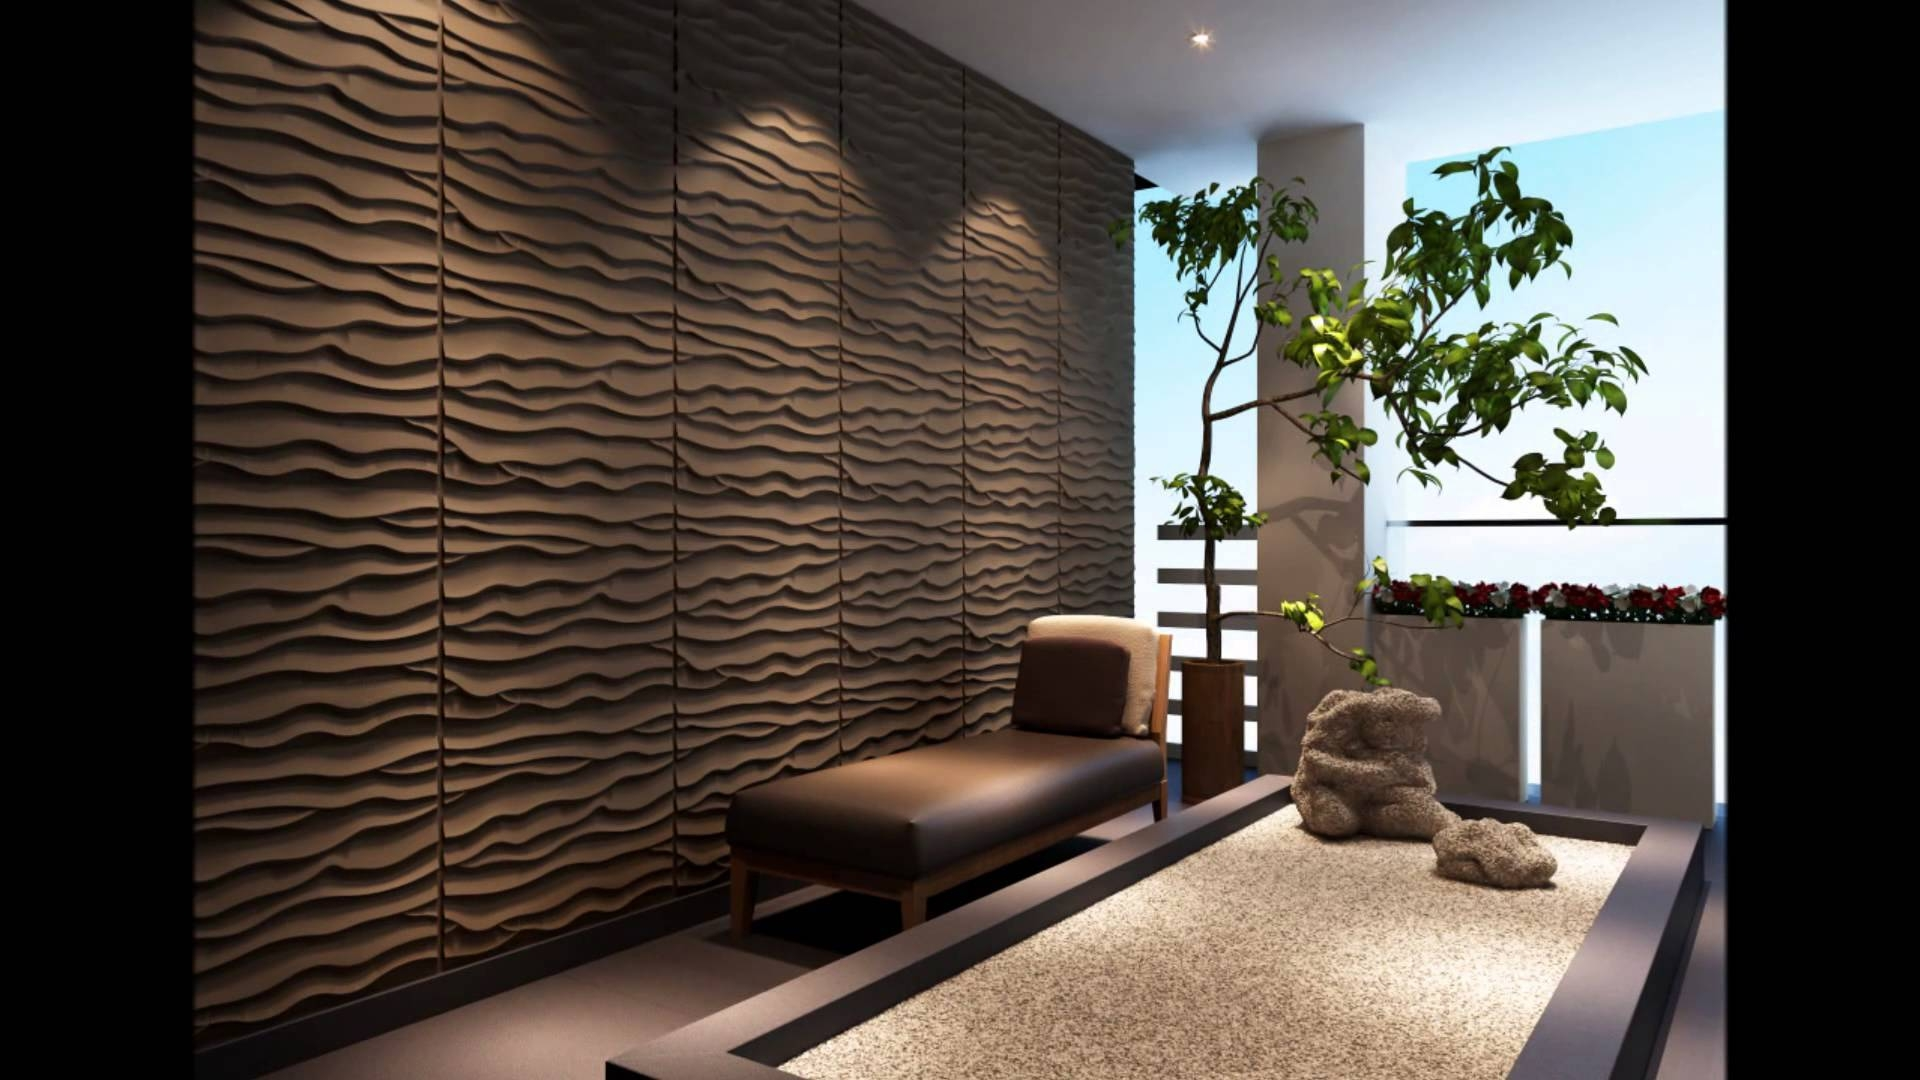 Triwol 3d Interior Decorative Wall Panels – Wall Art 3d Wall Panel Pertaining To Most Recently Released 3d Wall Panels Wall Art (View 2 of 20)